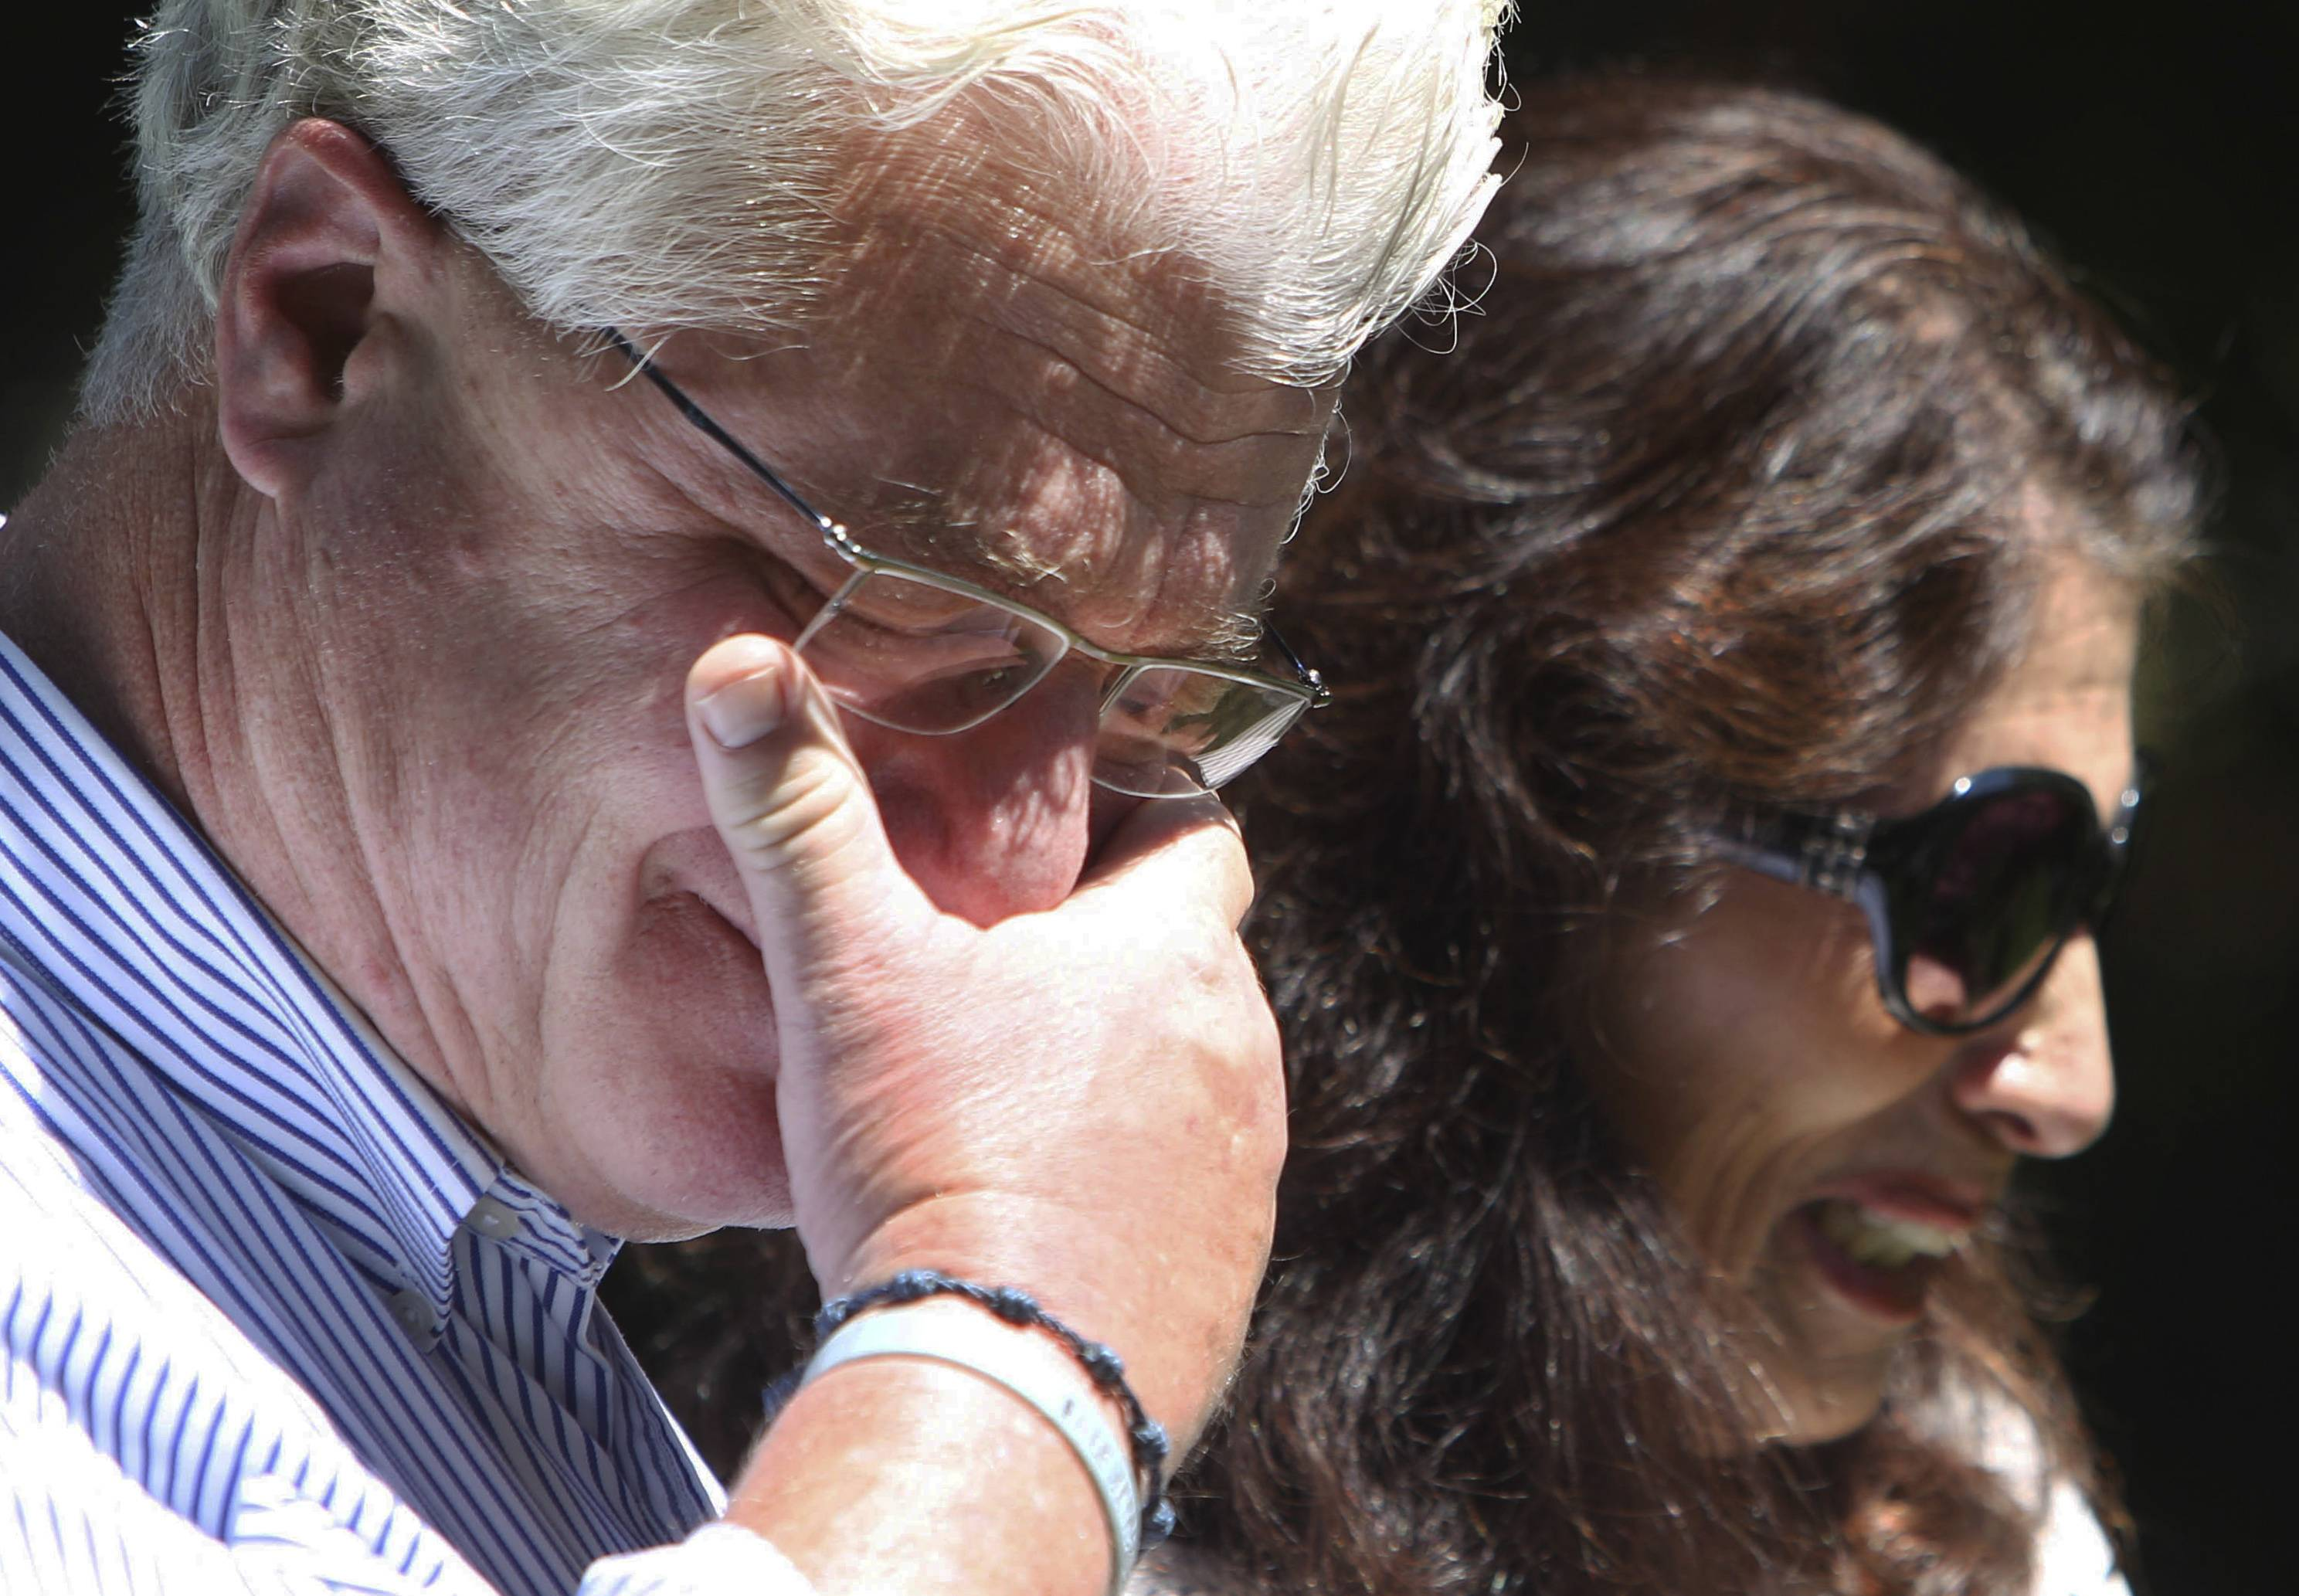 After speaking with U.S. President Barack Obama by phone on Wednesday, John and Diane Foley talk to reporters outside their home in Rochester, N.H. Their son James Foley was abducted in November 2012 while covering the Syrian conflict. Islamic militants posted a video showing his murder on Tuesday.